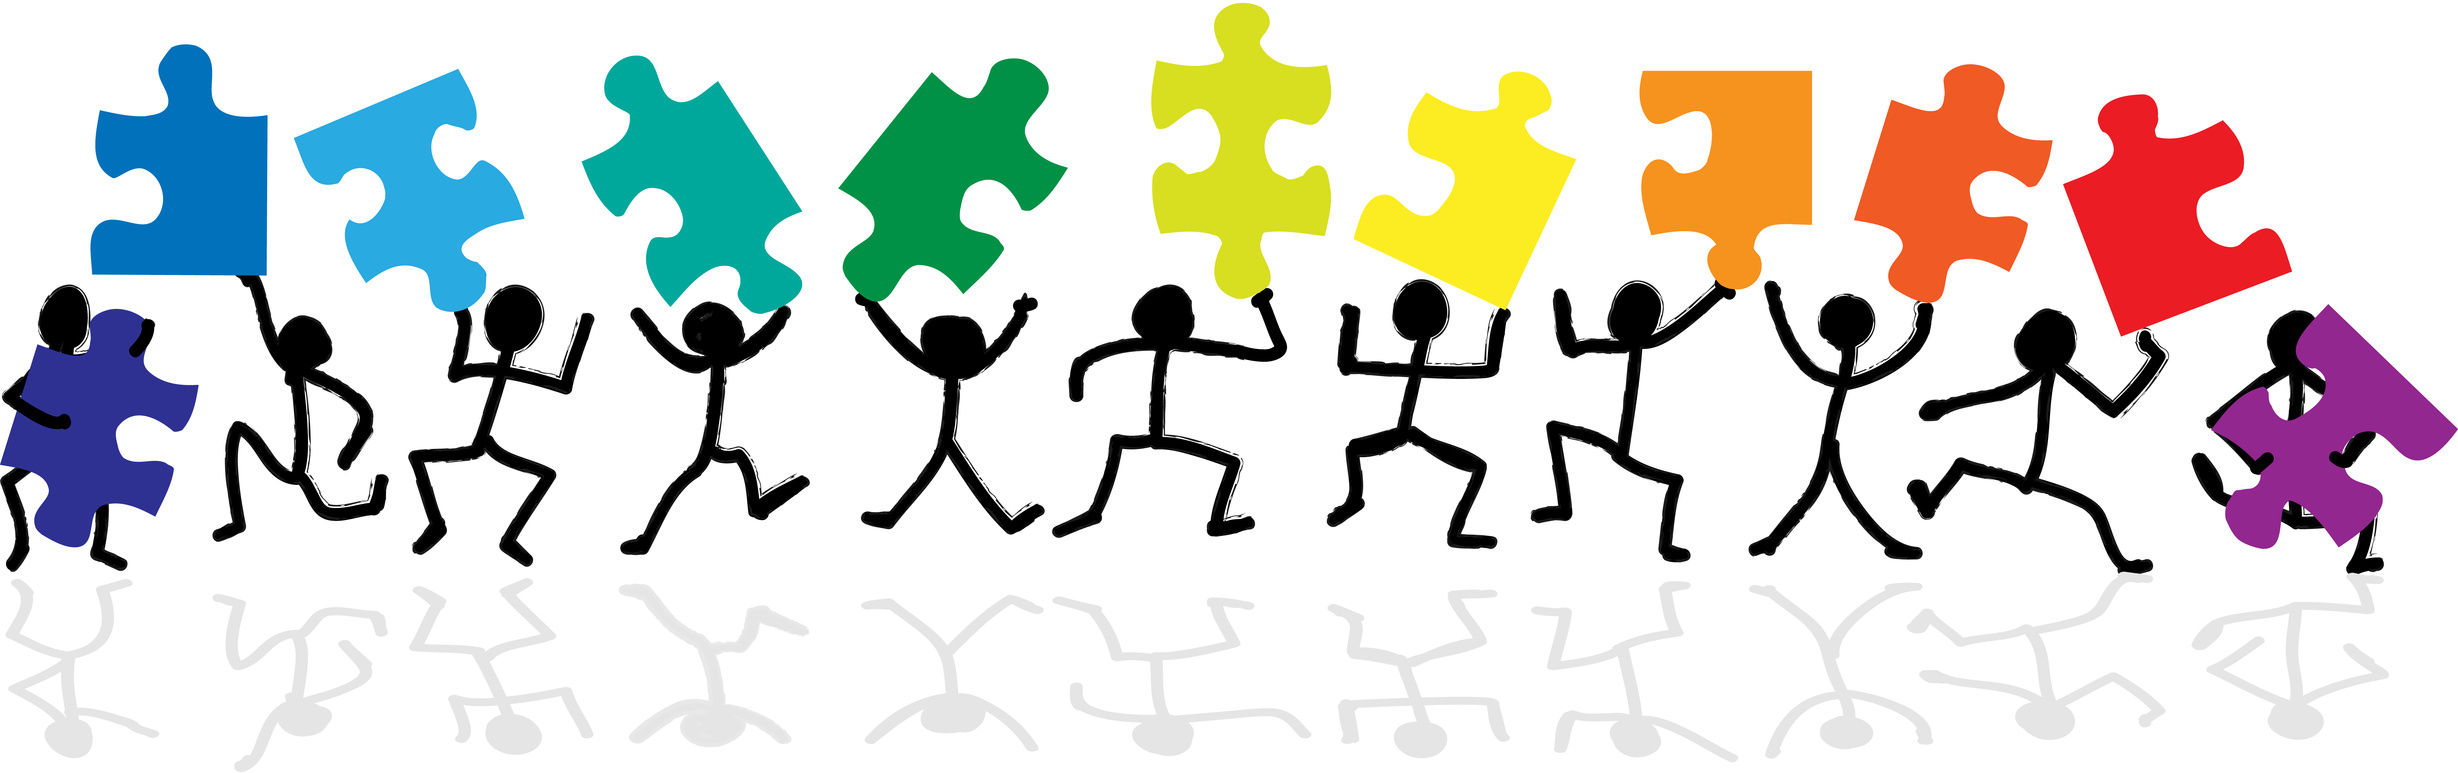 stick figure jigsaw puzzle